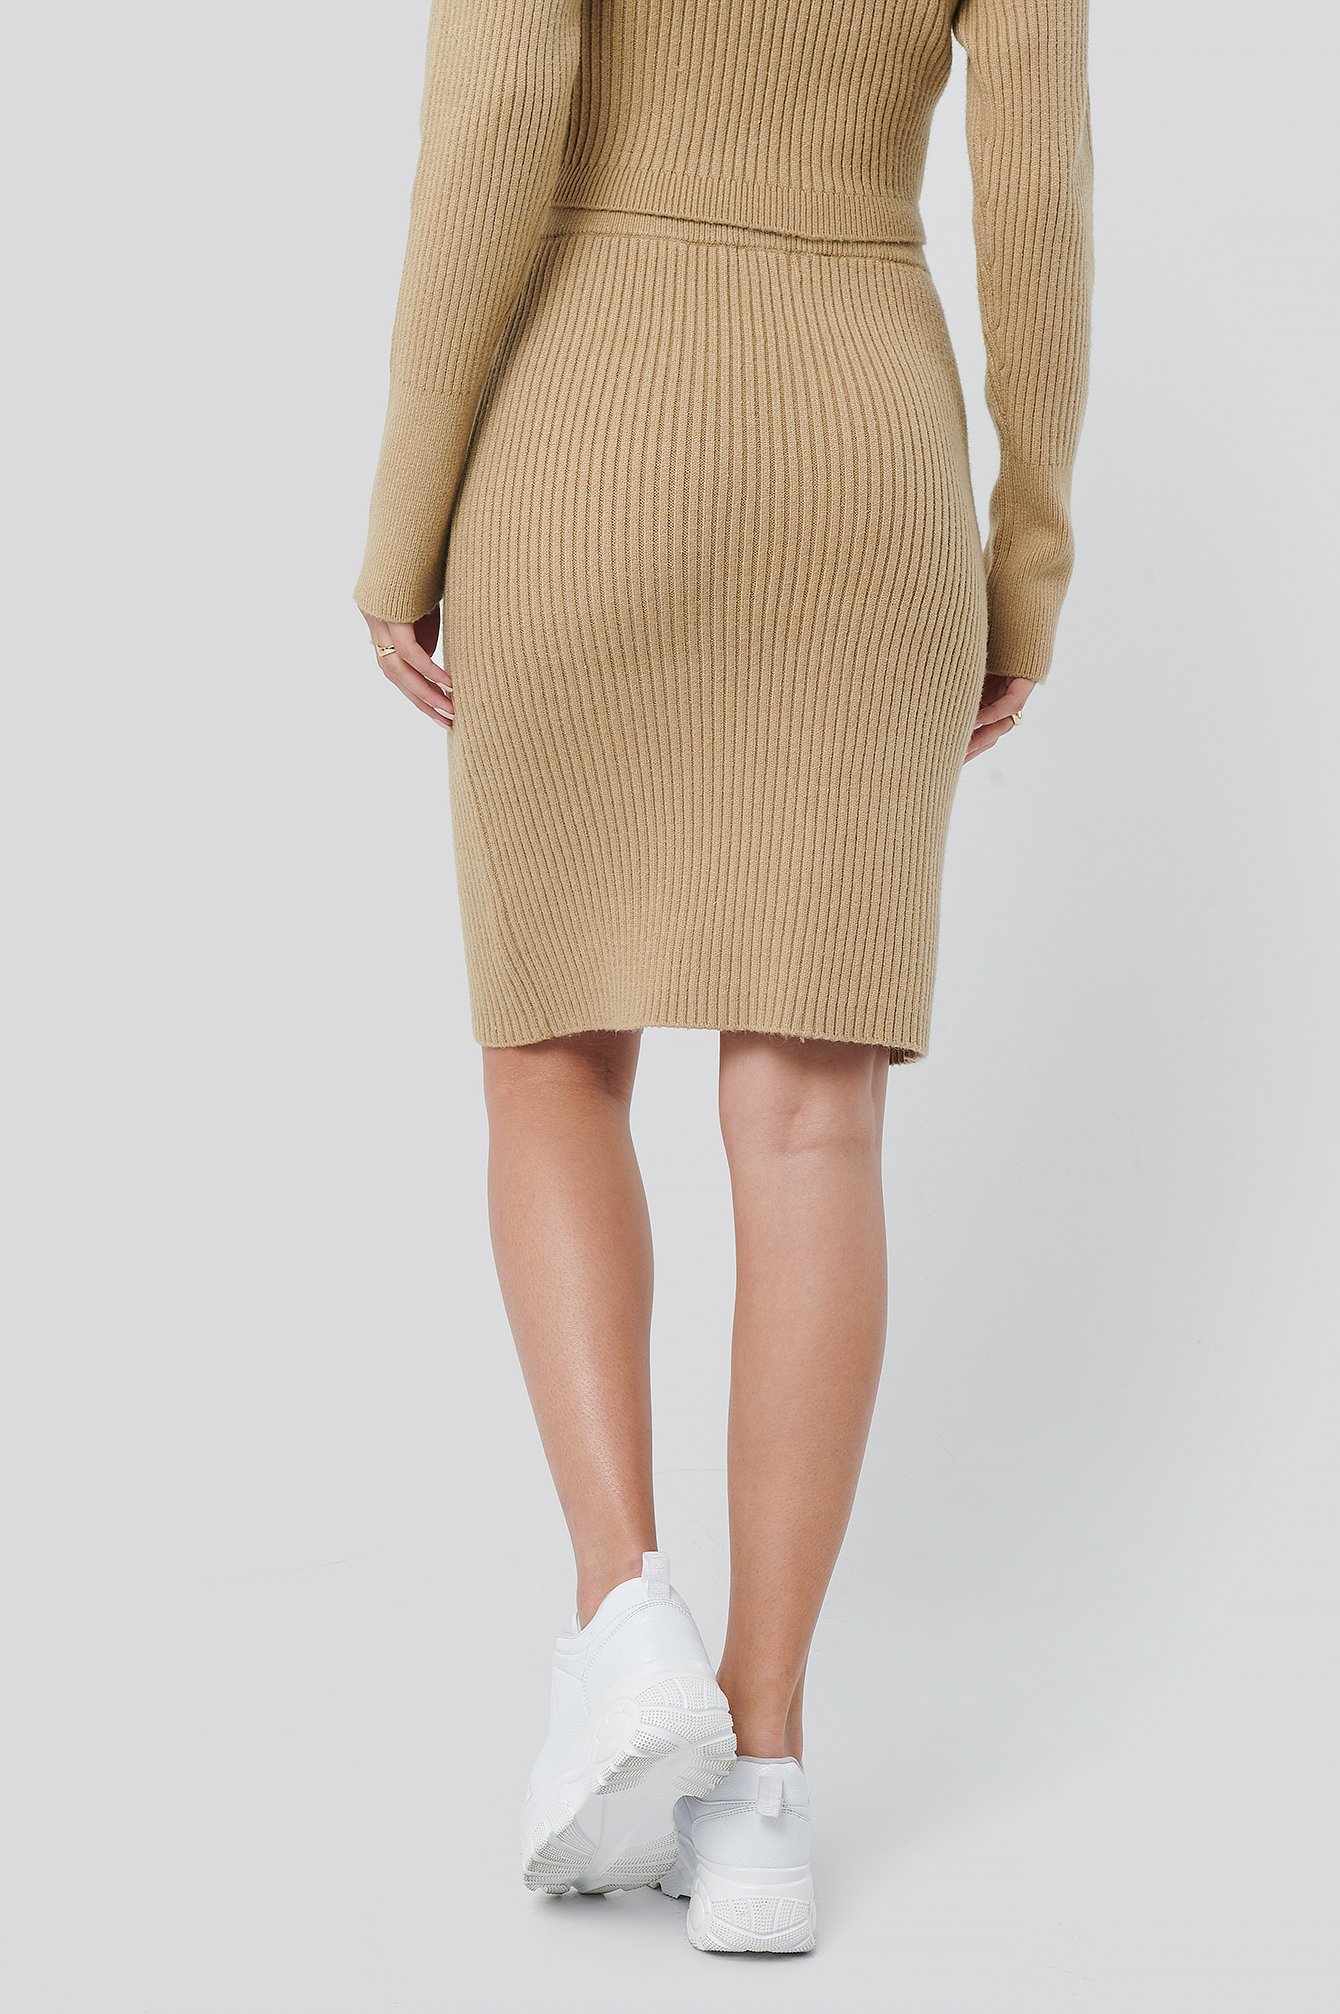 Beige Knitted Skirt